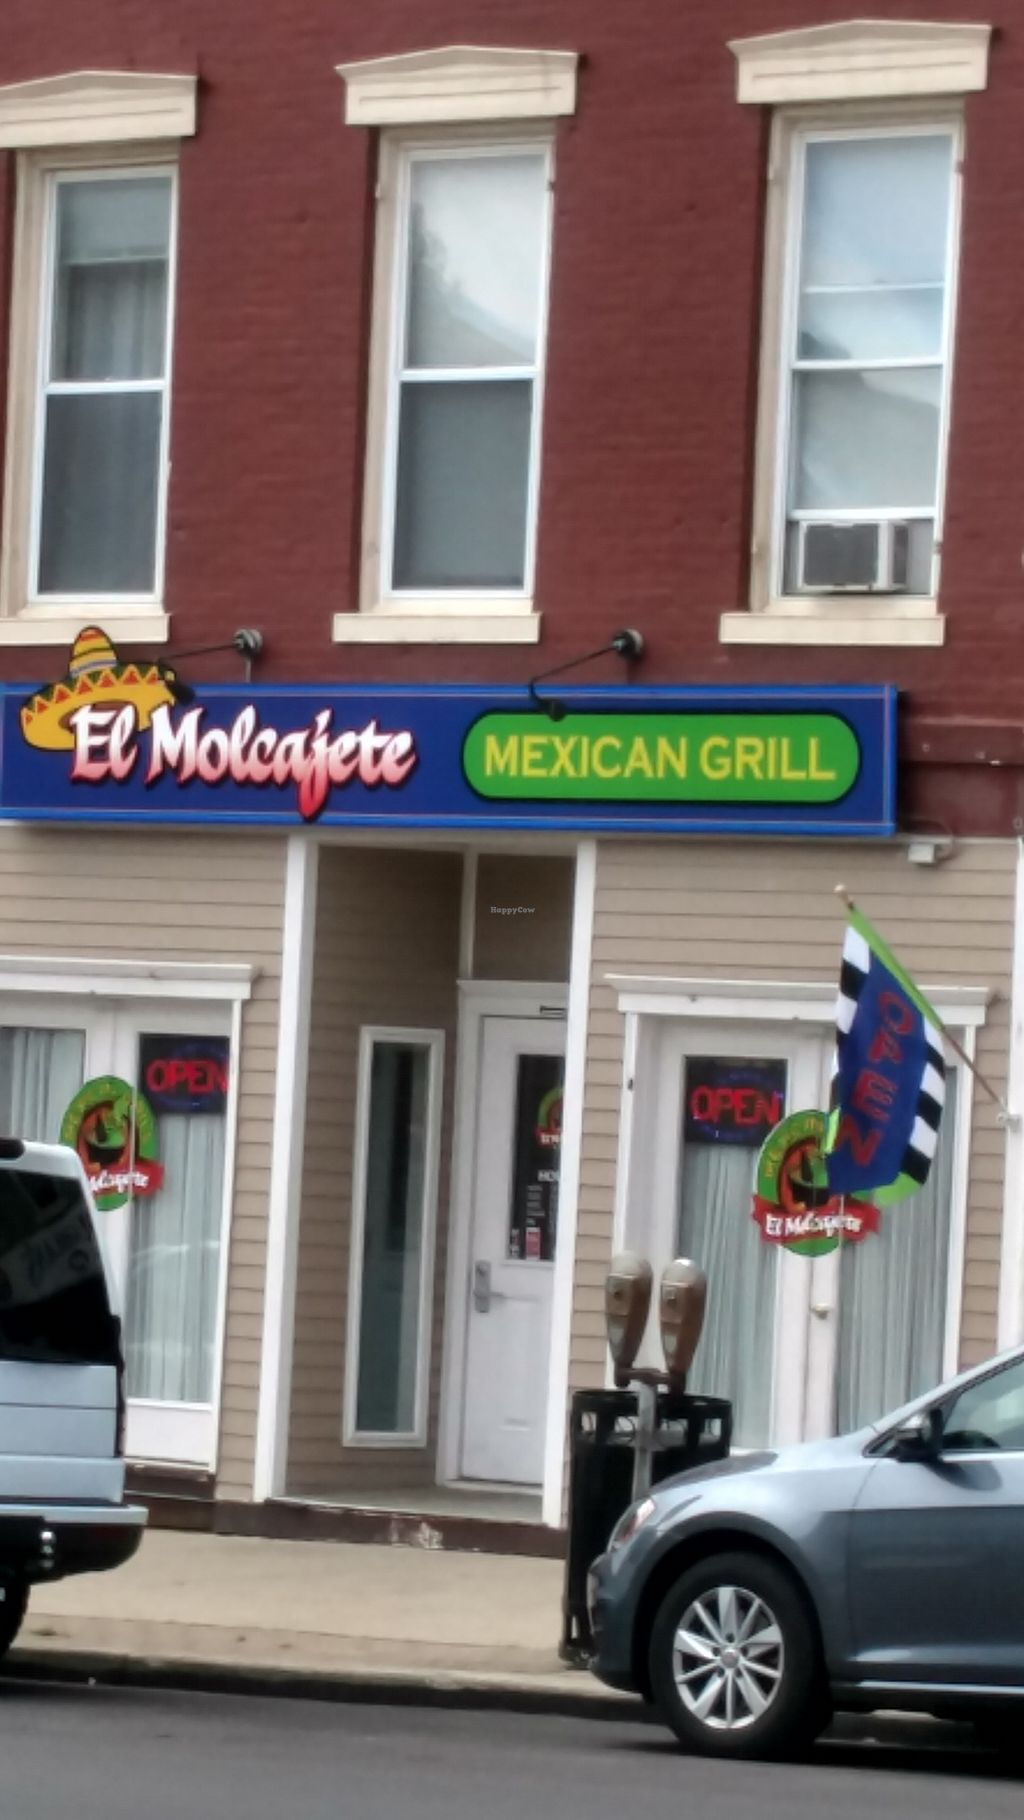 "Photo of El Molcajete Mexican Grill  by <a href=""/members/profile/American%20Vegan"">American Vegan</a> <br/>El Molcajete <br/> July 16, 2017  - <a href='/contact/abuse/image/96312/281007'>Report</a>"